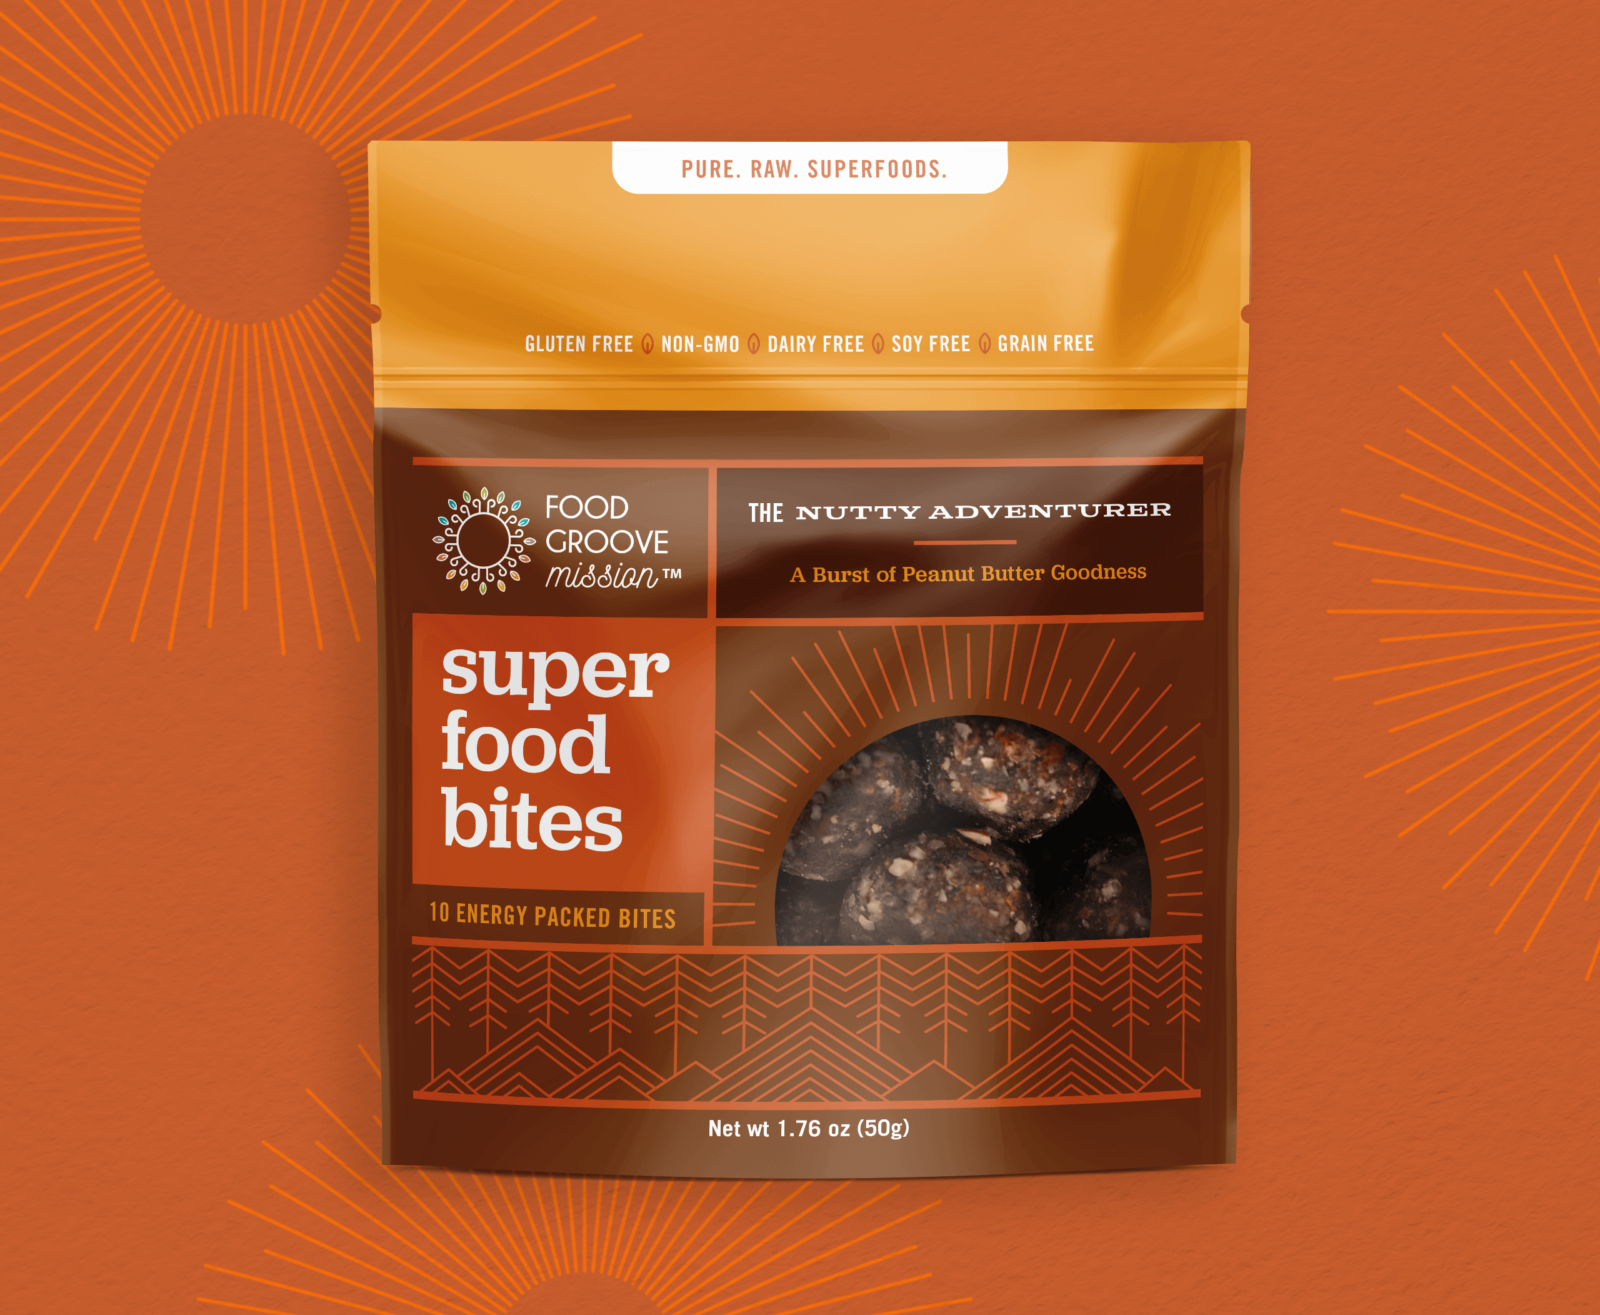 Food Groove Packaging Design Orange